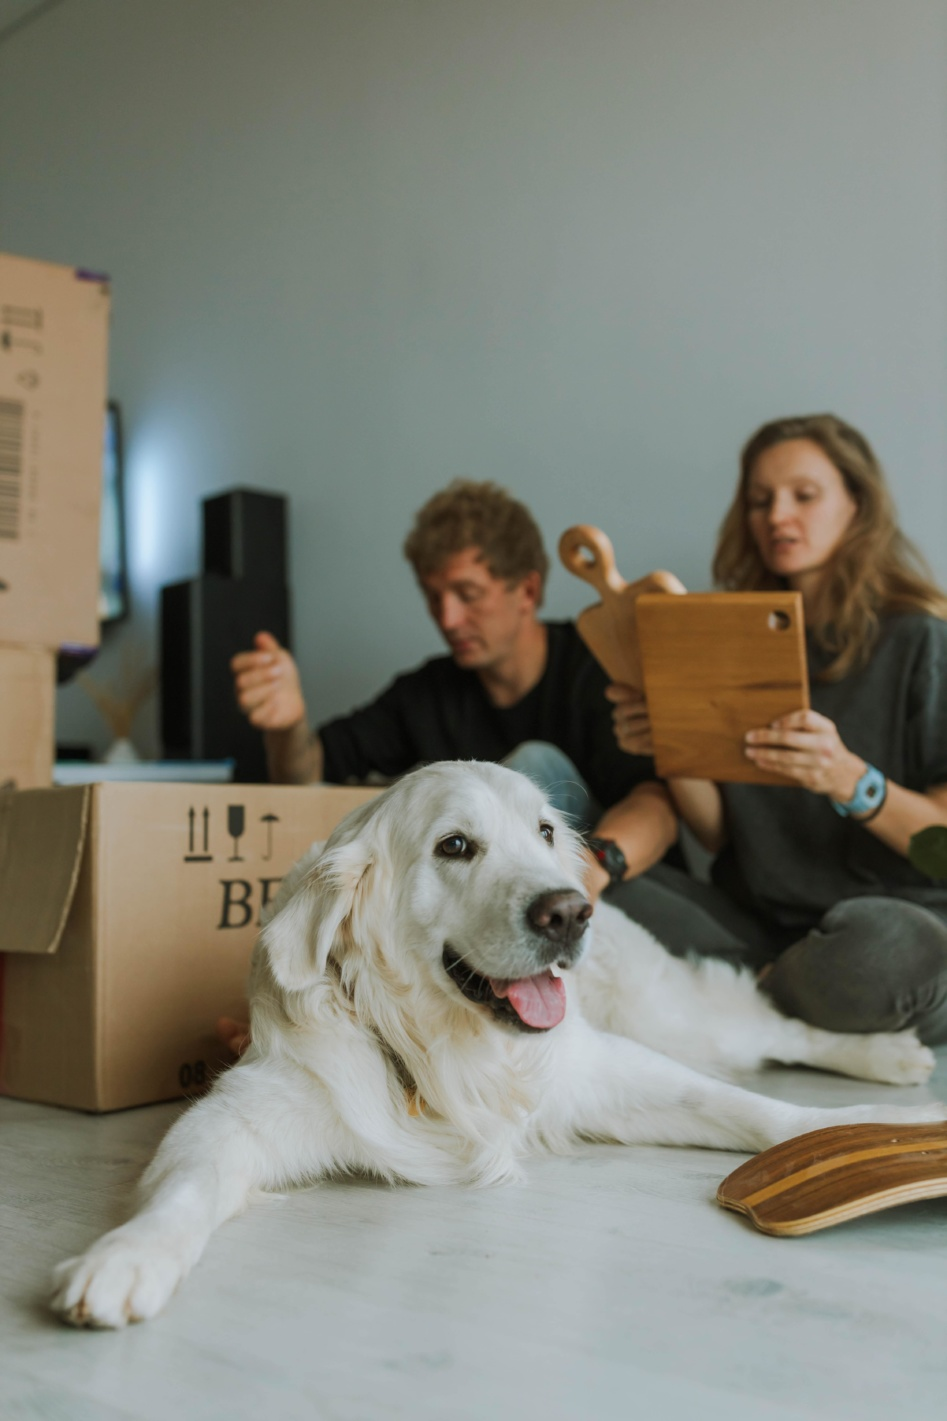 Protect your peace of mind when moving home 1